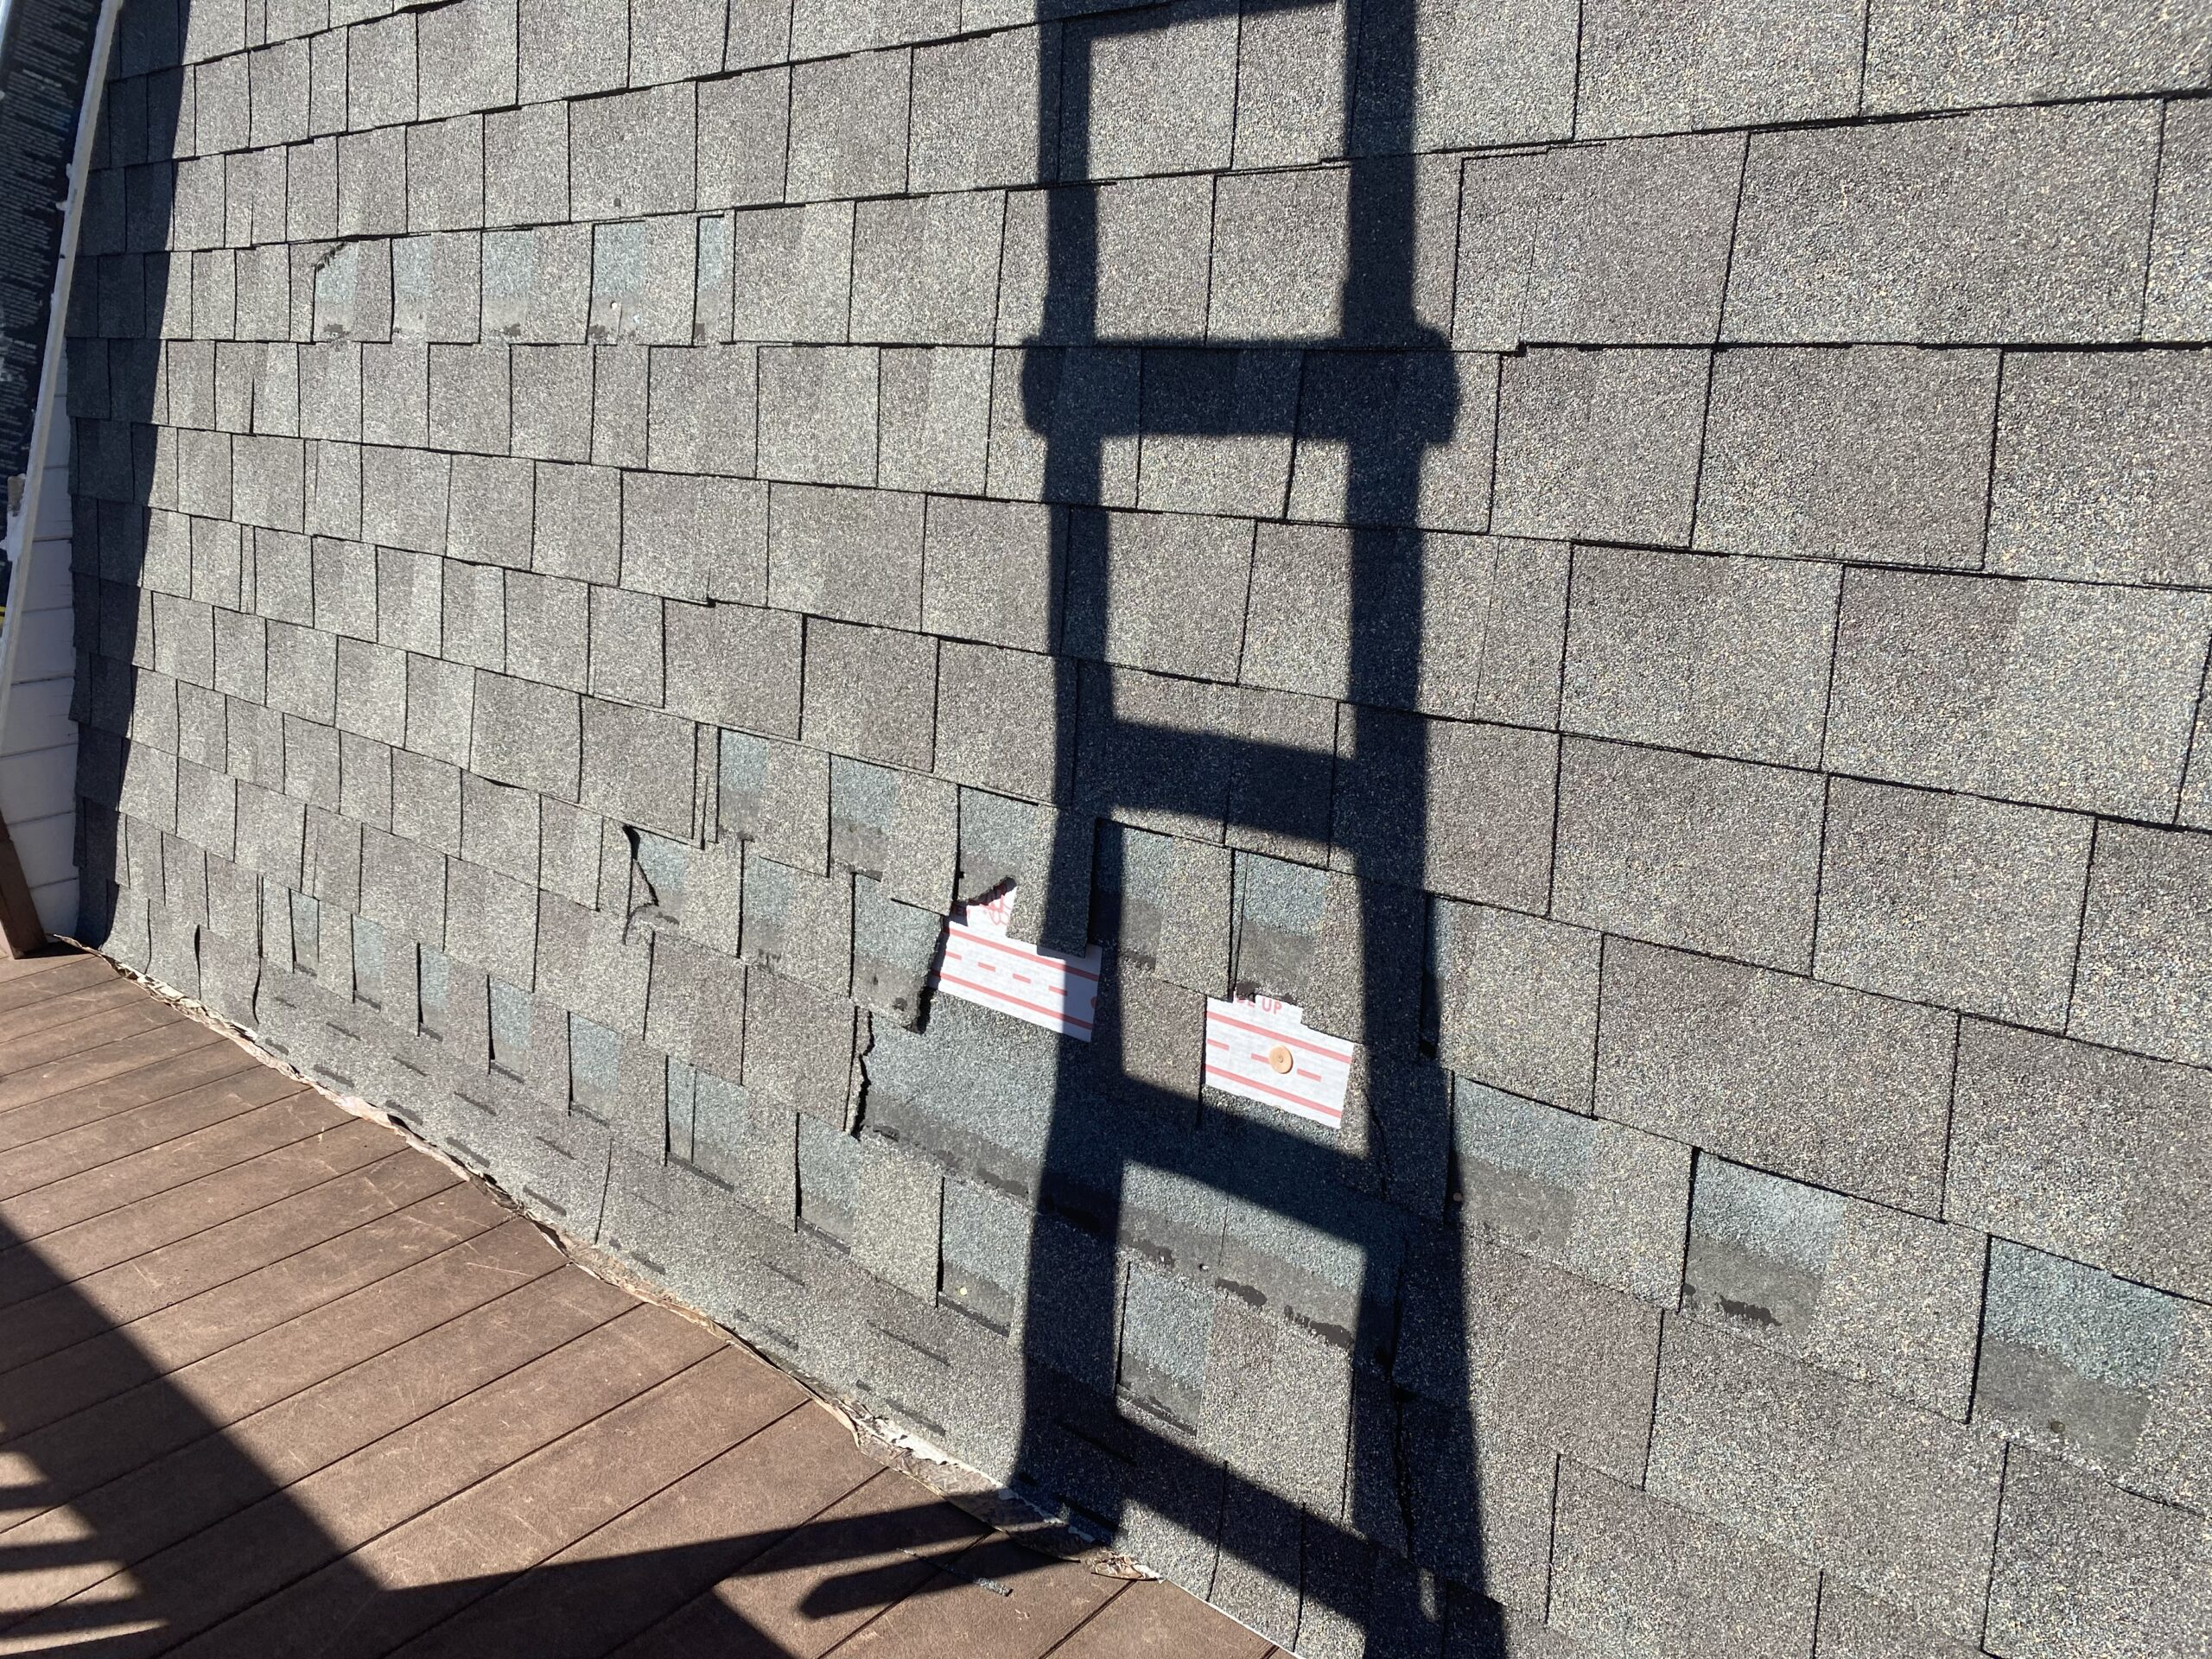 This is a picture shingles that have been damaged and torn off.